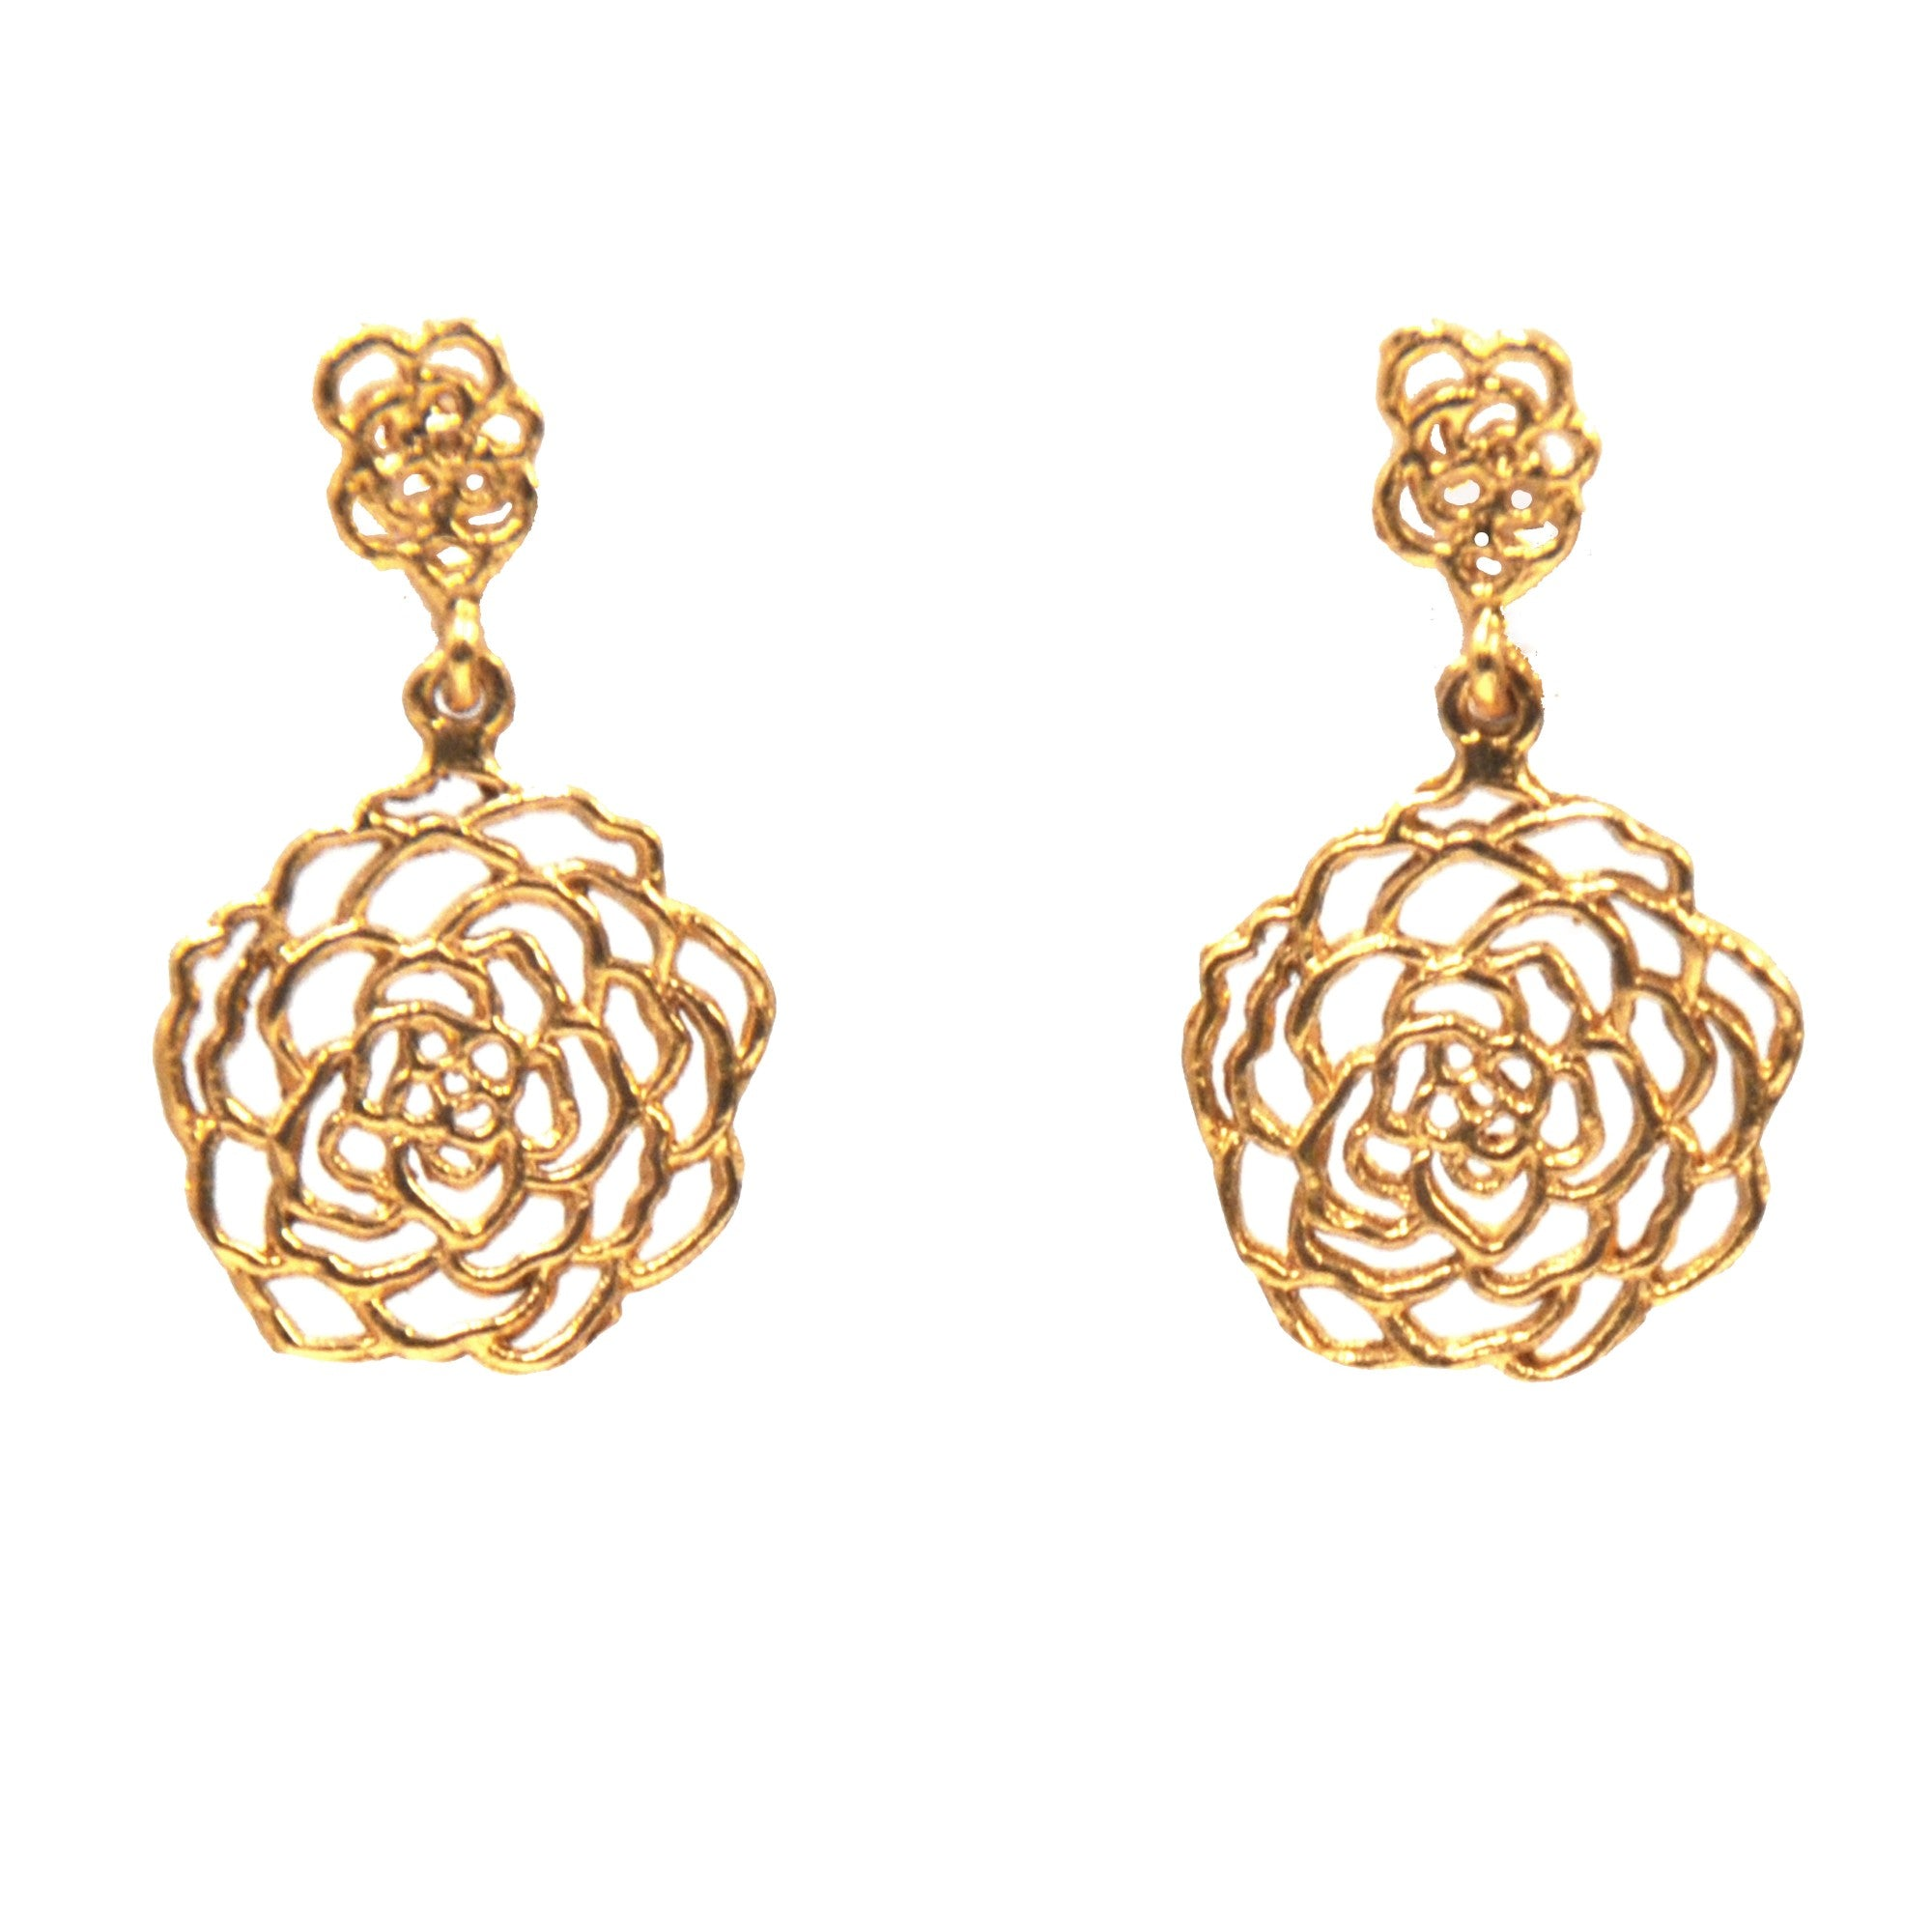 jewellers designer goldearrings golden pune parmar jewellersparmar earrings tops shop gold jewellery gift in sppjt